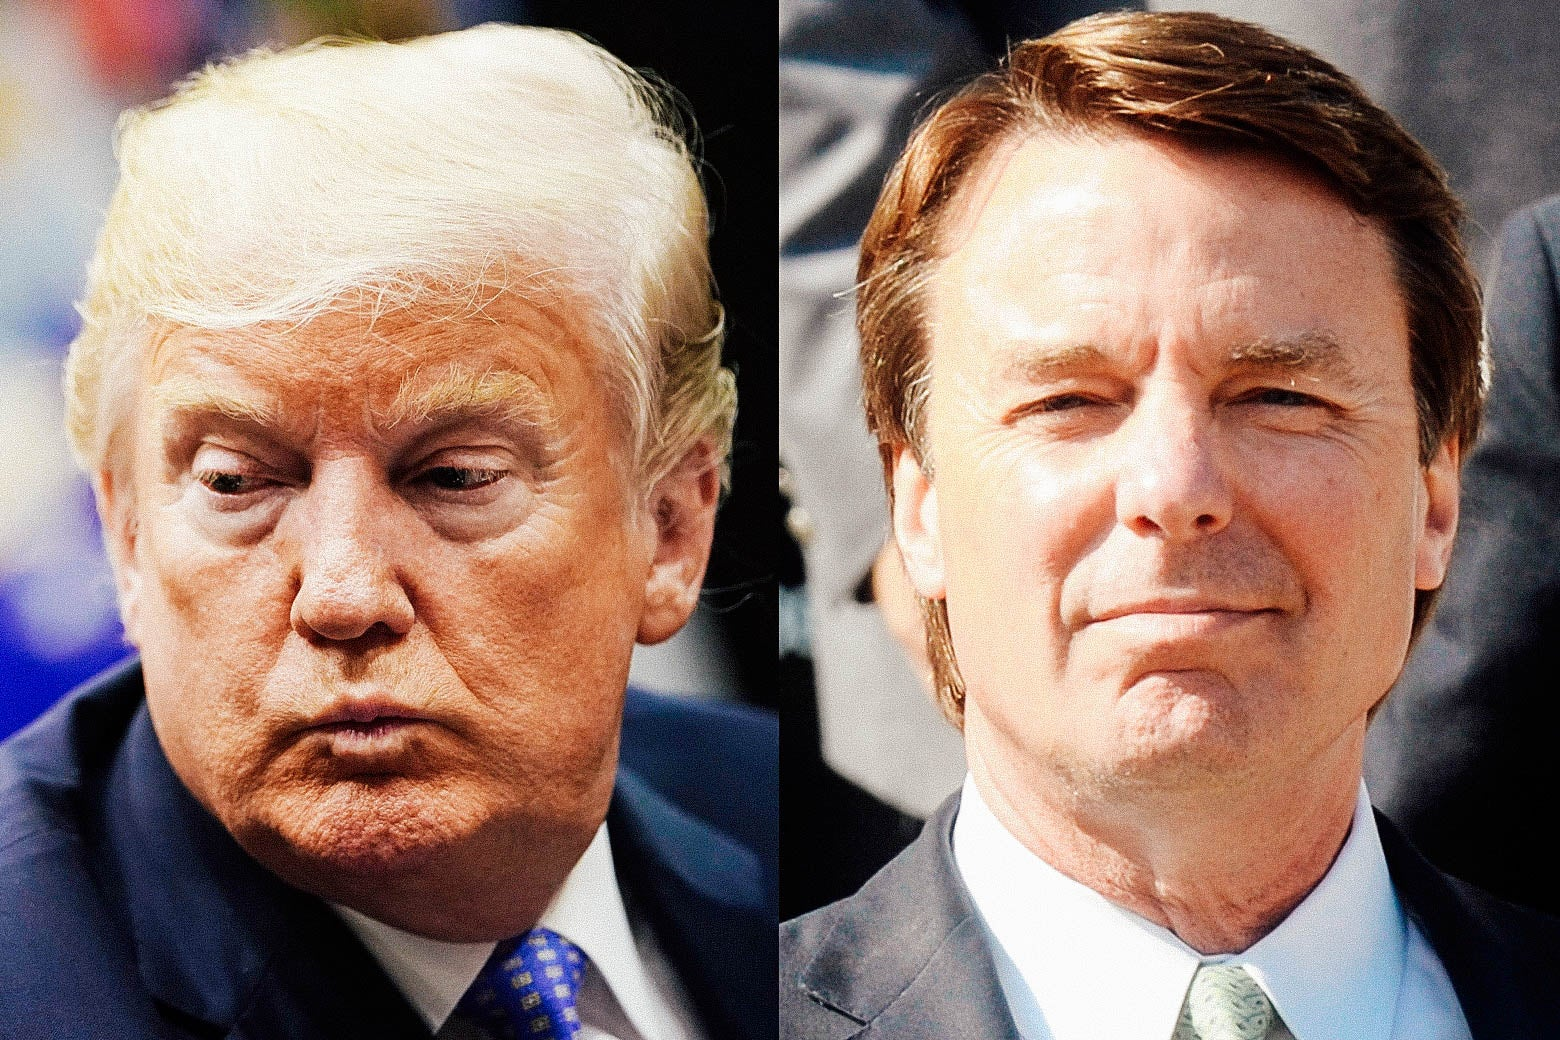 Donald Trump and John Edwards.